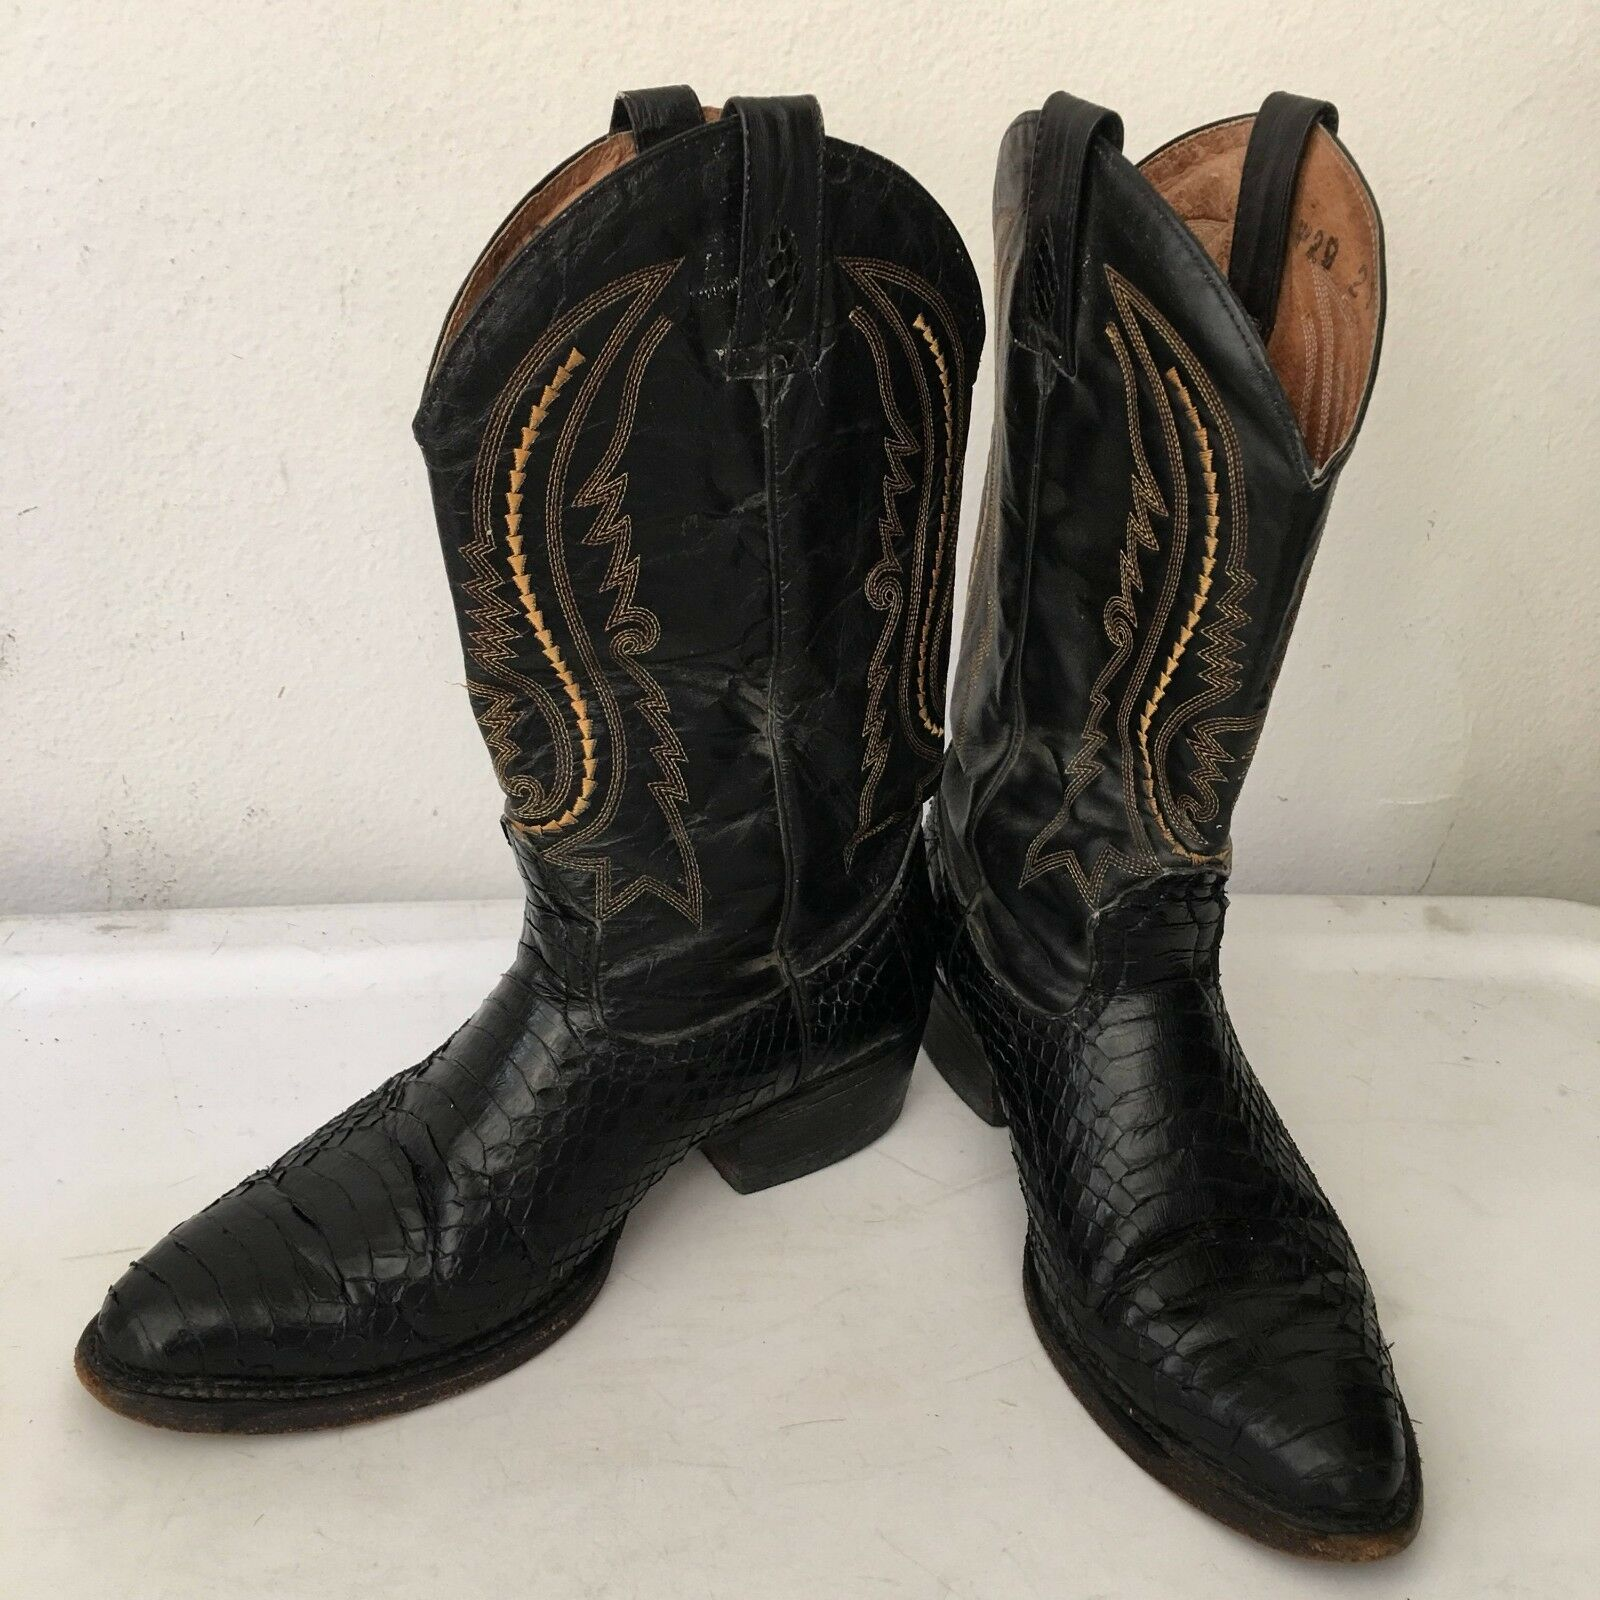 Real steep cowboy boots from real python leather vintage cowboy size-10-10 1 2